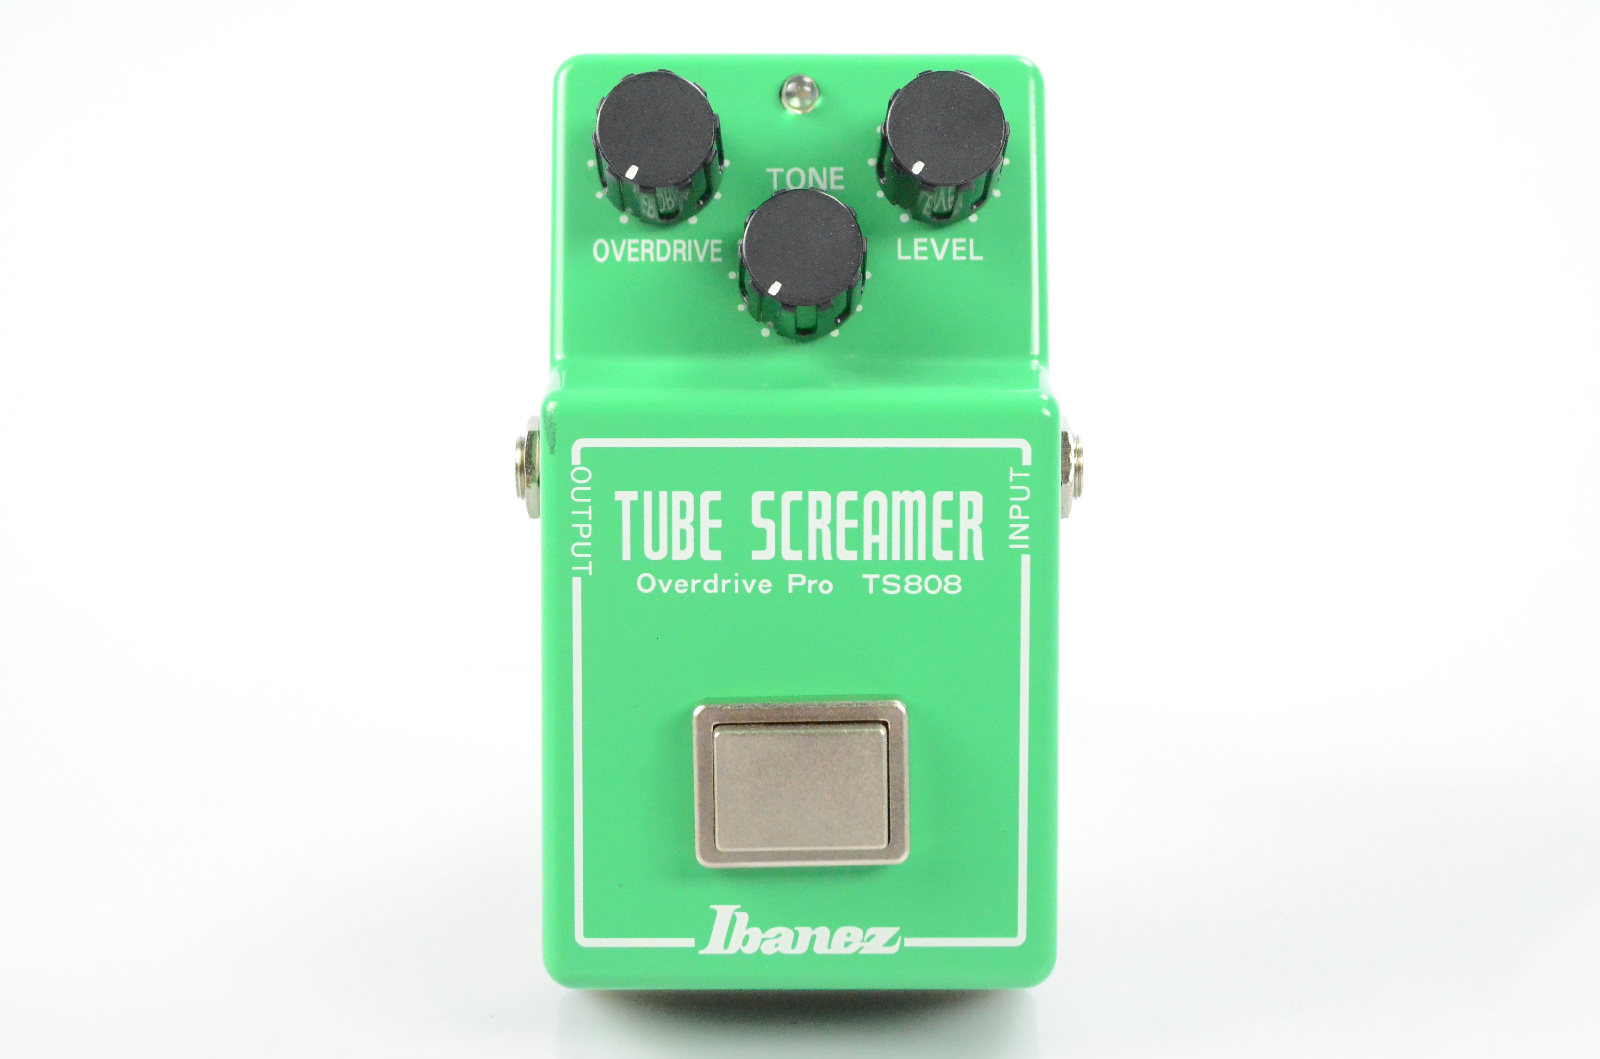 Ibanez TS808 Tube Screamer Overdrive Pro Guitar Pedal Owned by Papa Roach #33248